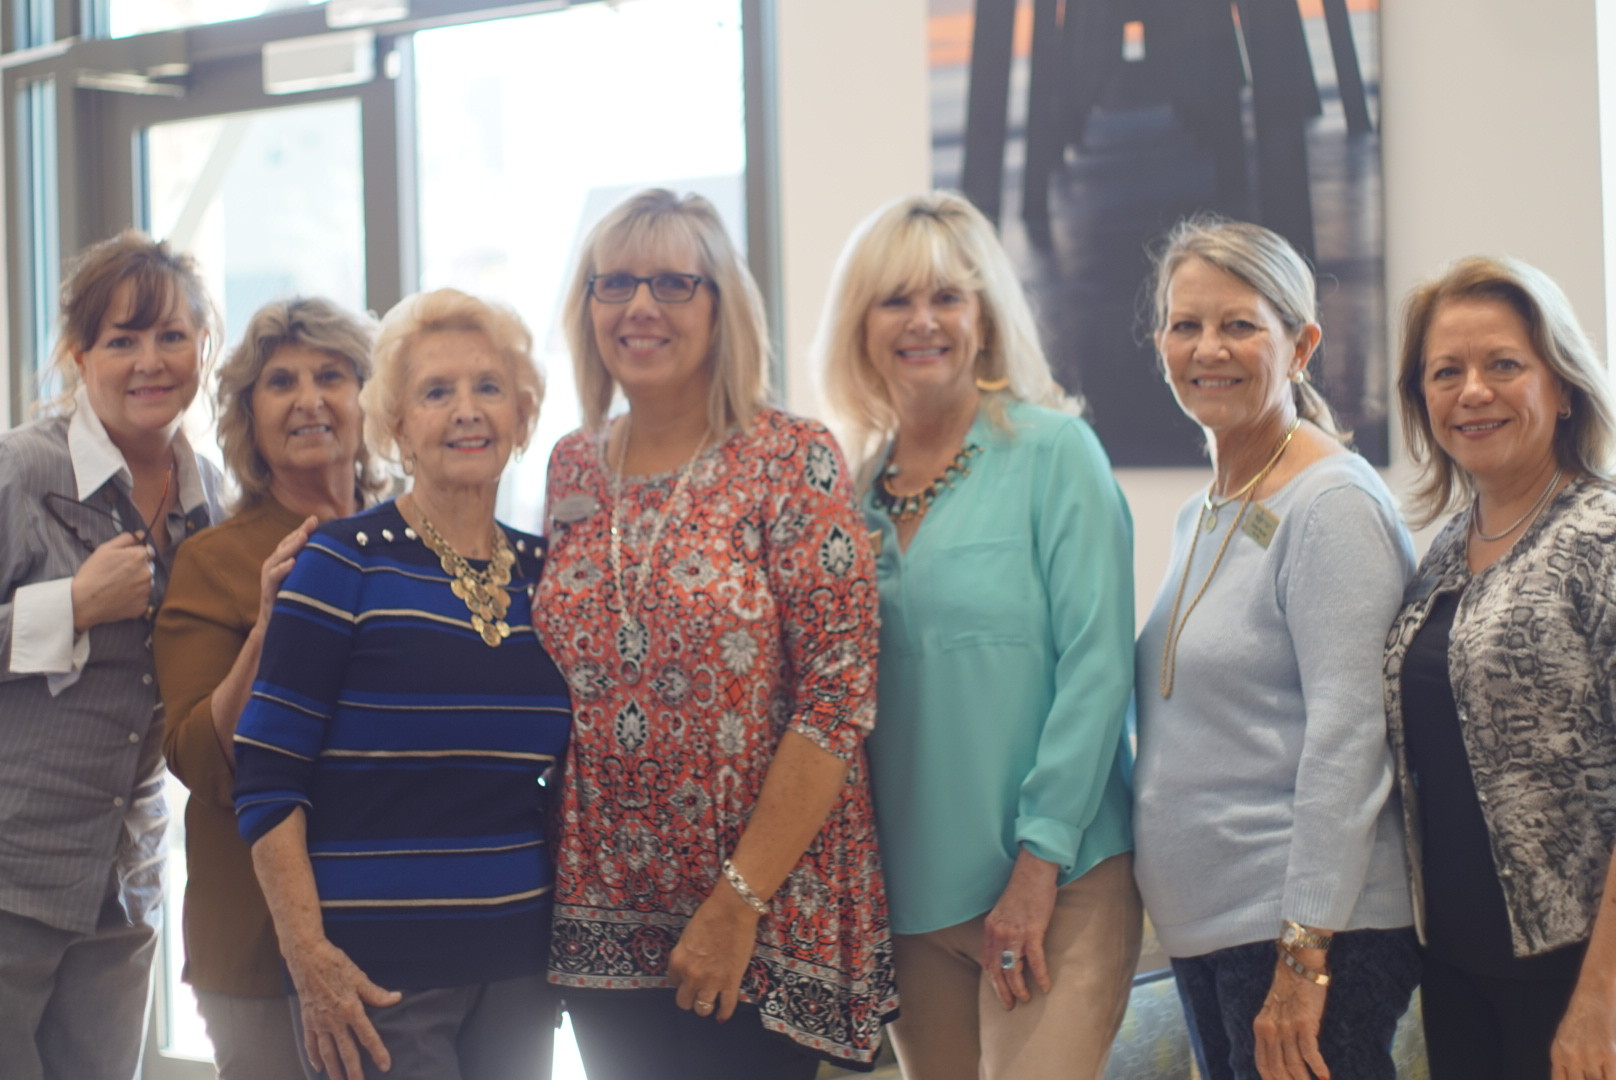 Berkshire Hathaway HomeServices Florida Network Realty agents Karen Feliciano, Fran Gormon, Sharon Leahy, Pam Belcher, Karen Franklin, Carolyn McLean and Cheryl Dolan.